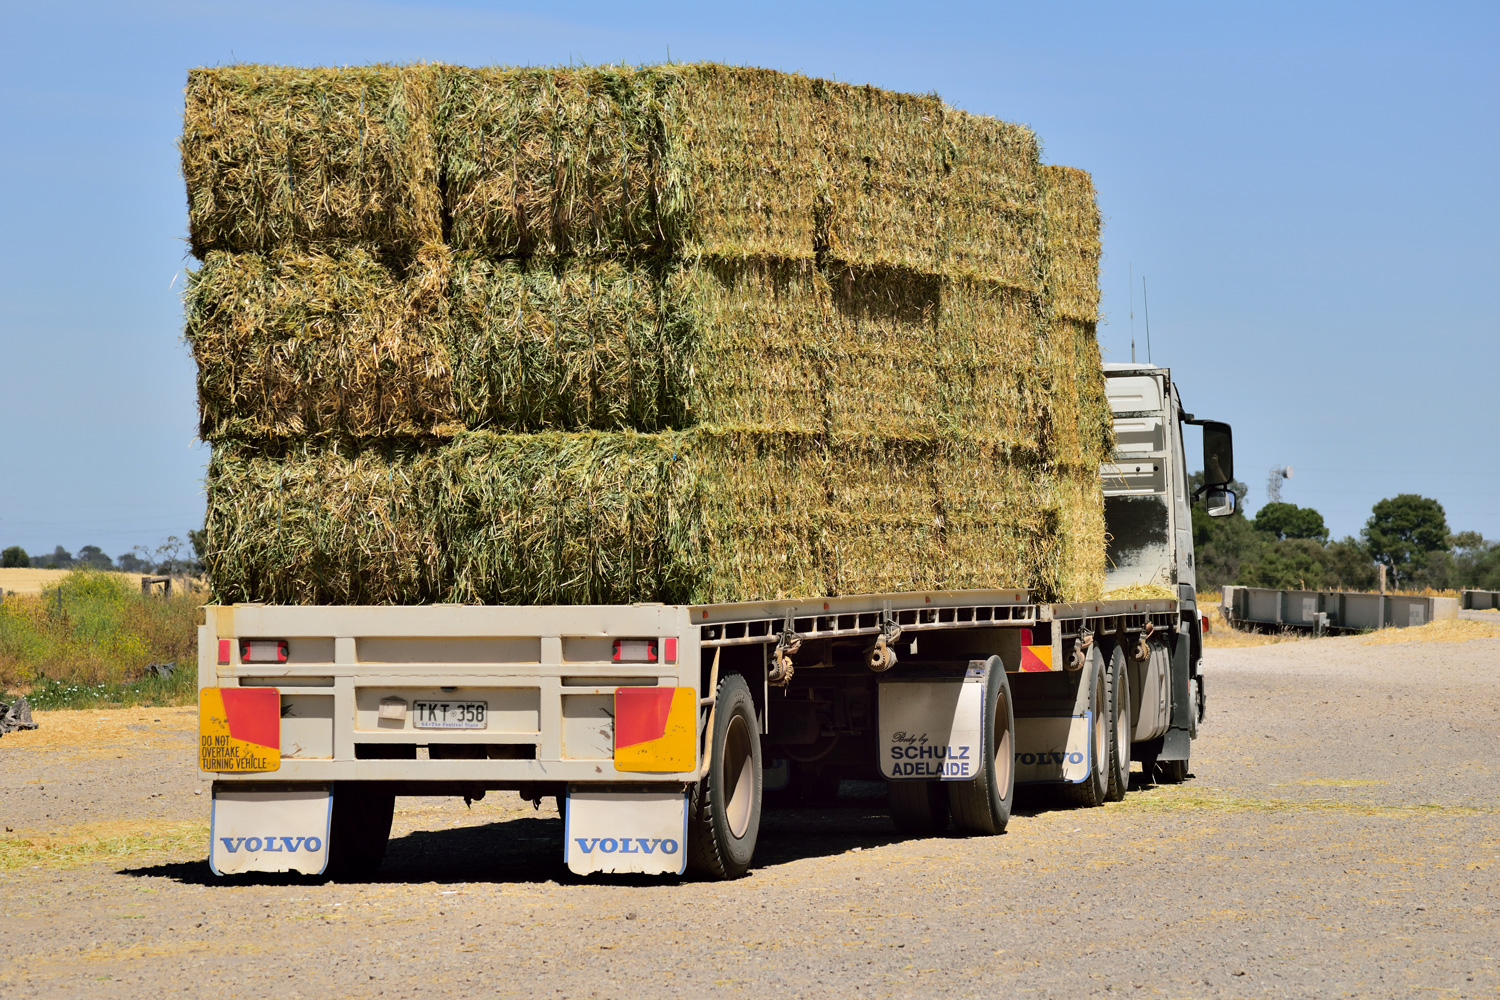 Hay bales on a truck